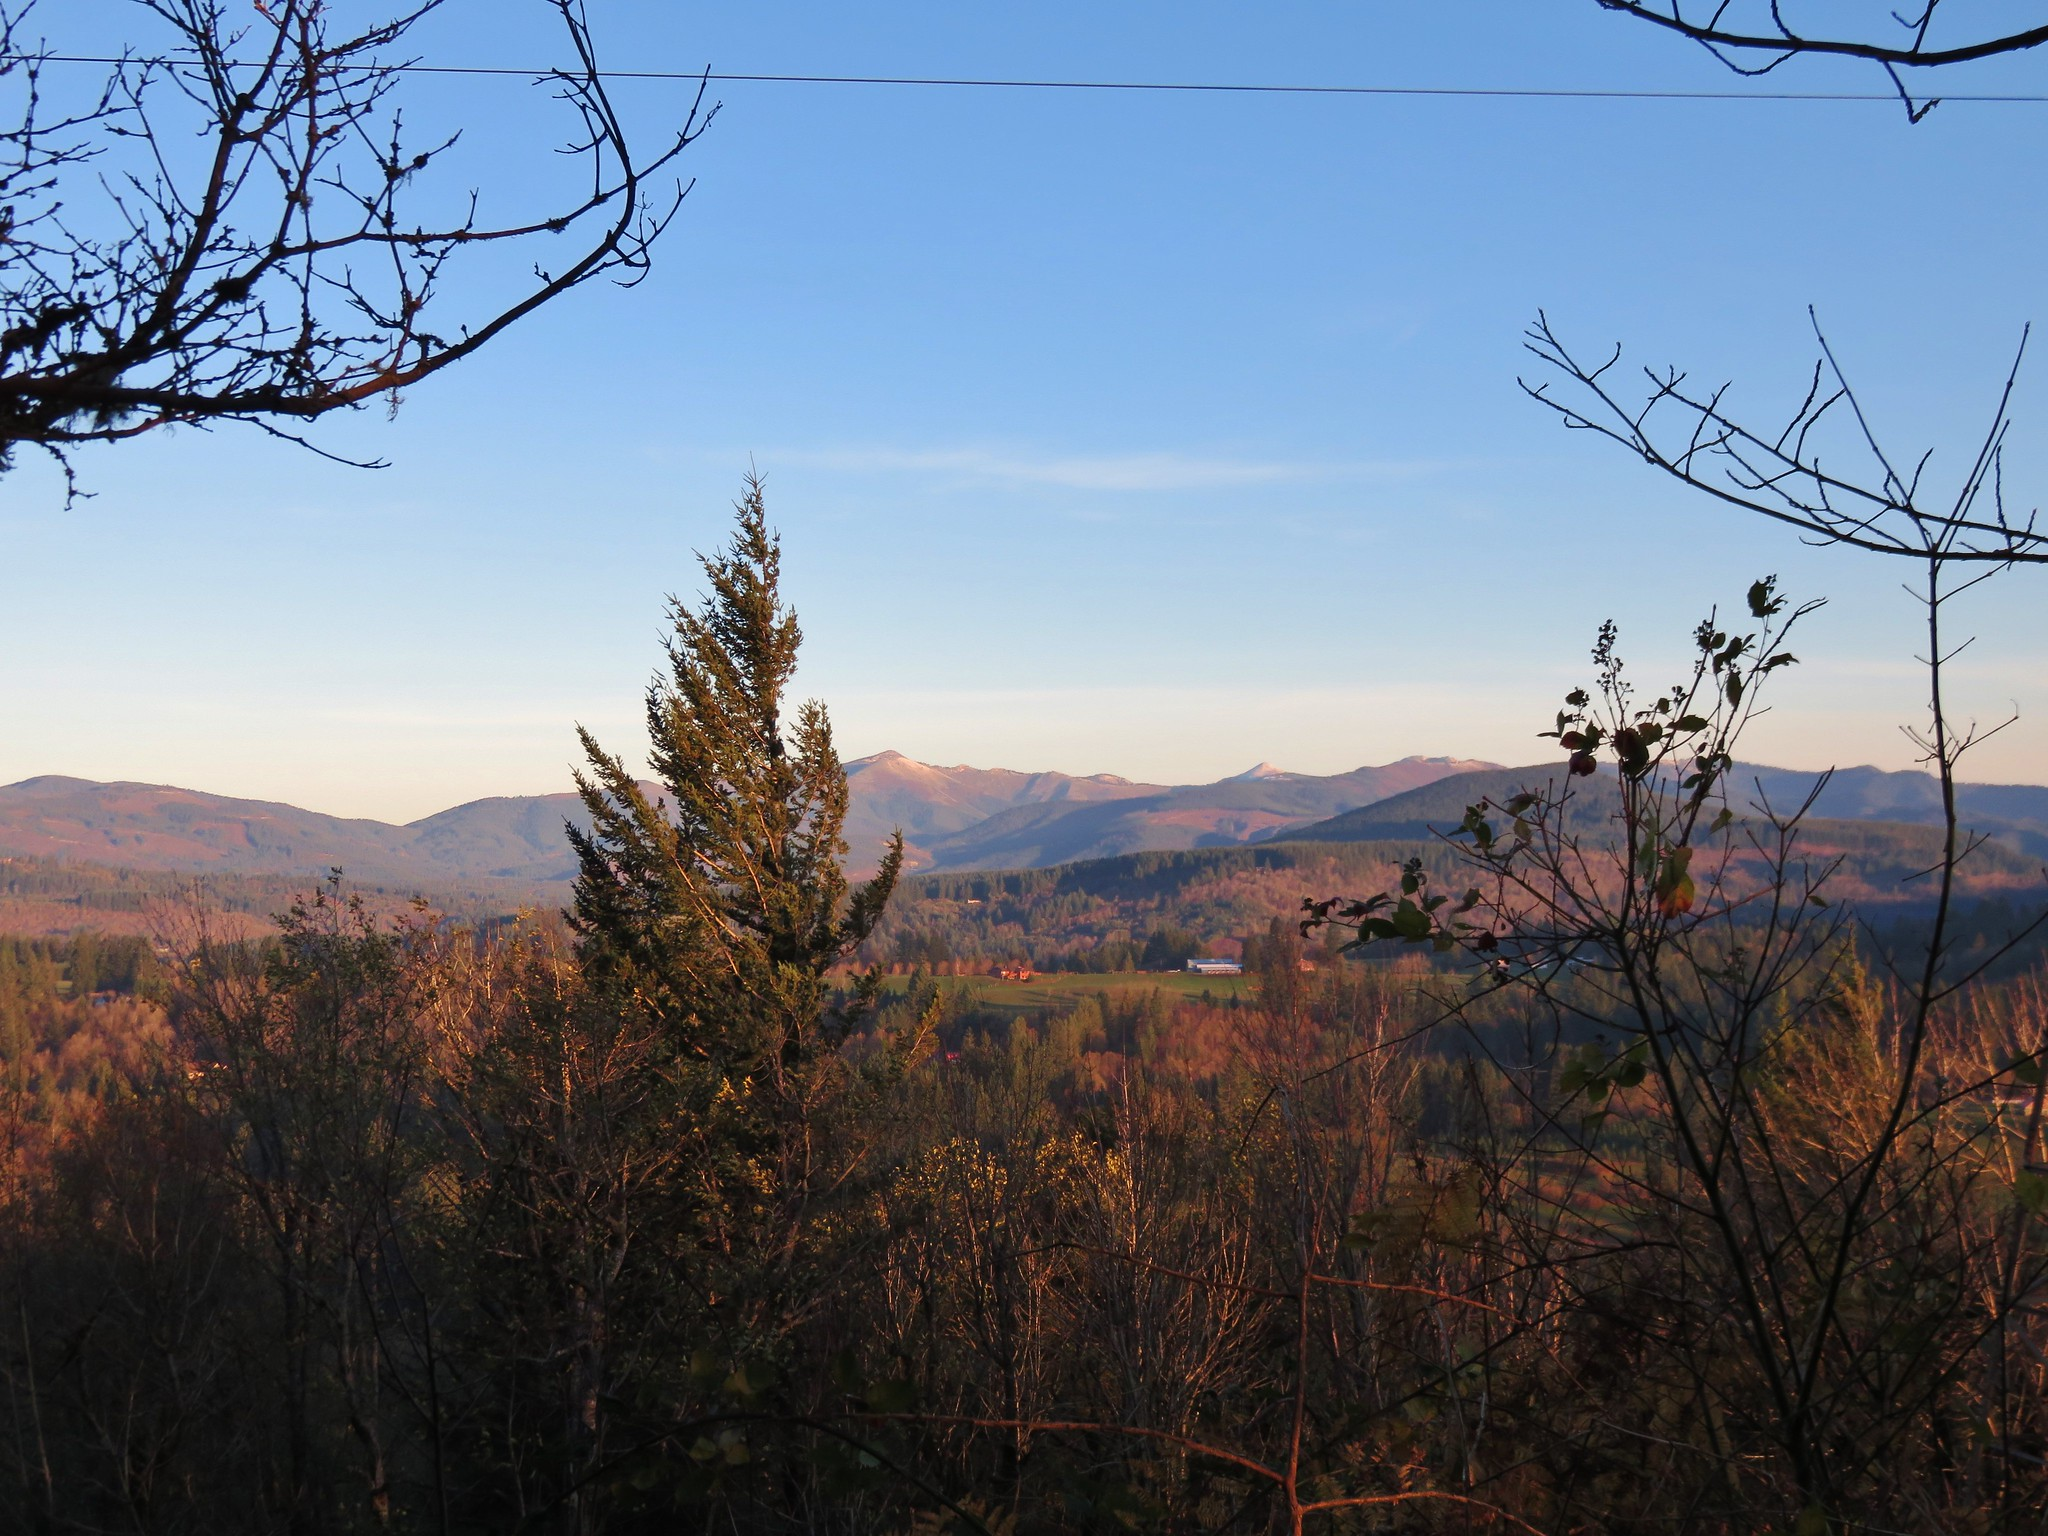 Silver Star, Little Baldy, and Bluff Mountain